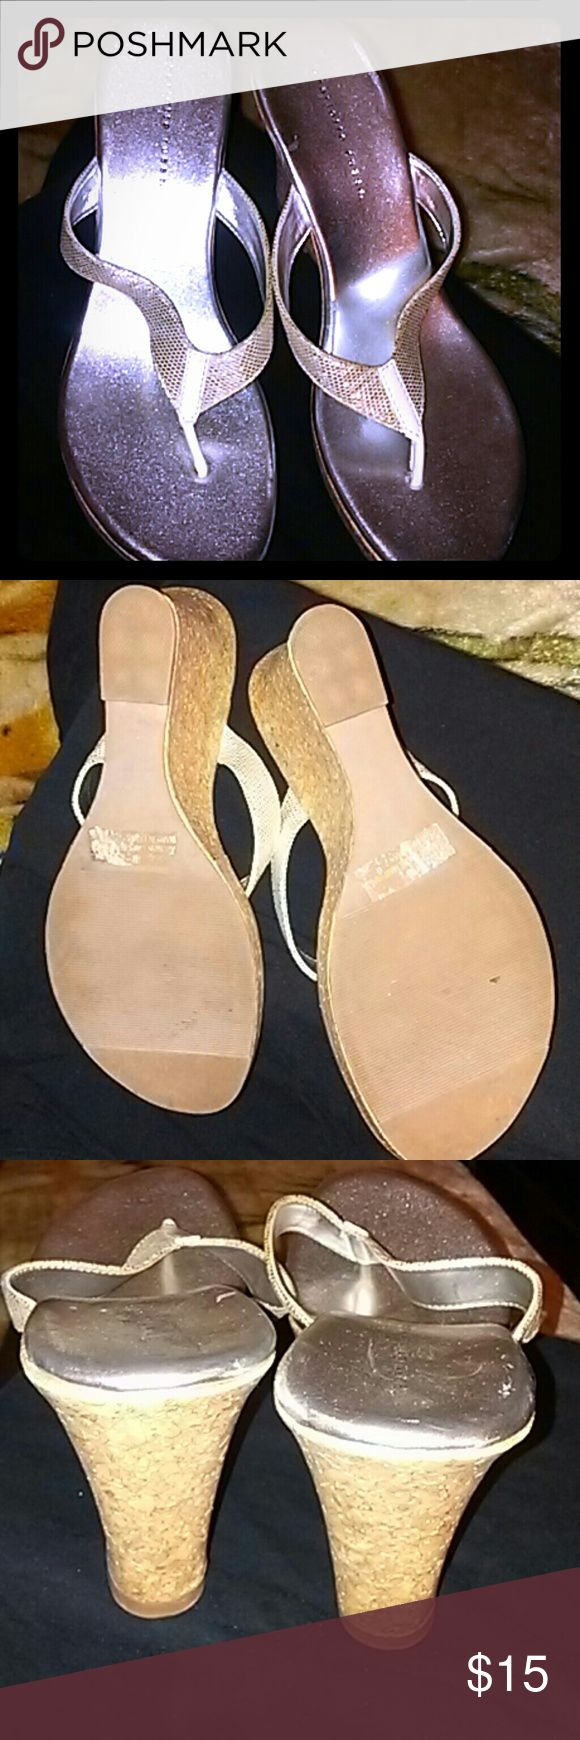 Silver wedge sandals Silver wedge sandals.  Like new! Charlotte Russe Shoes Wedges